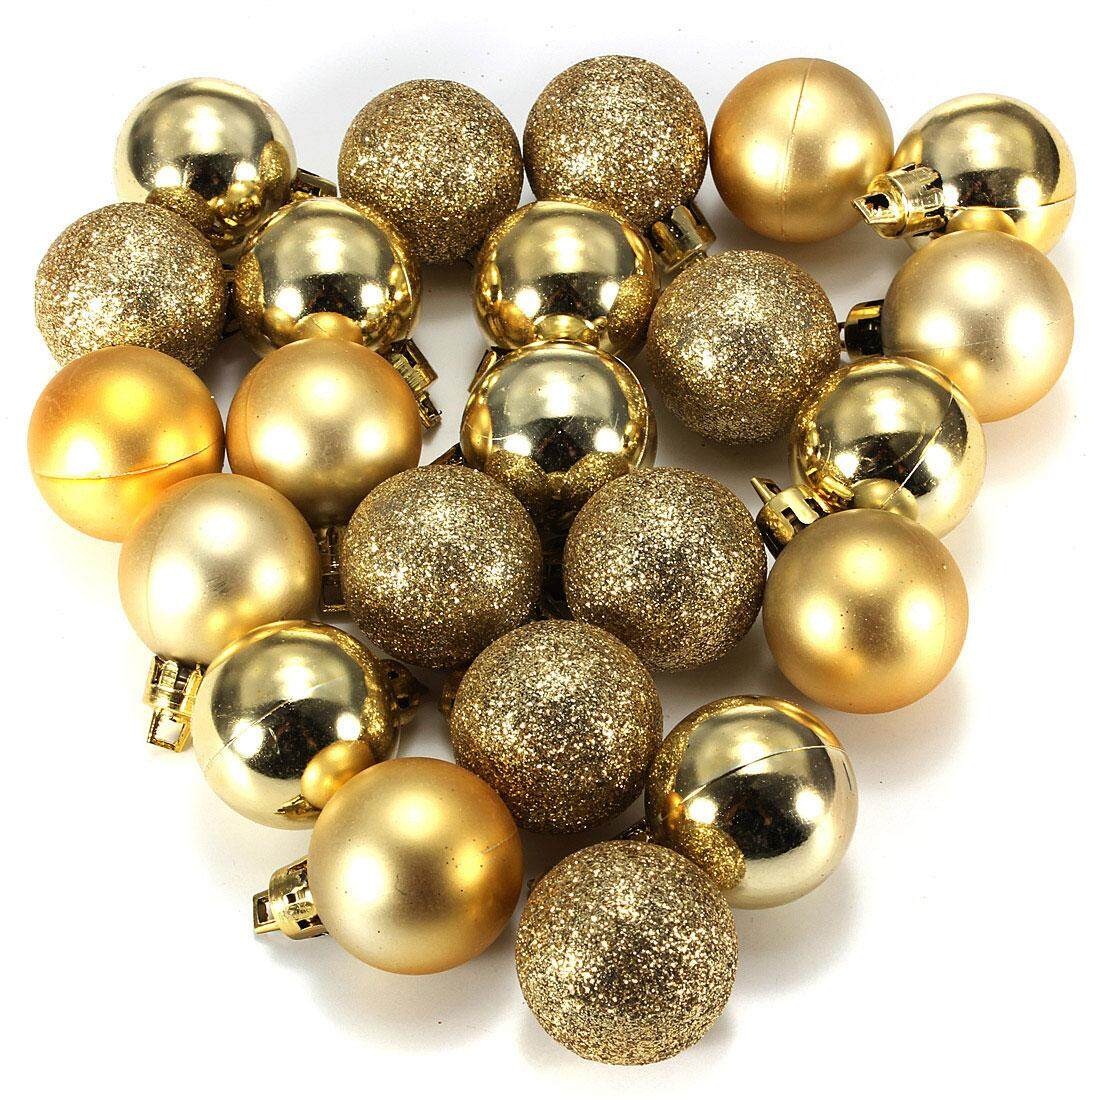 New 24pcs Chic Christmas Baubles Tree Plain Glitter Xmas Decoration Ornament Ball Hot Gold By Glimmer.